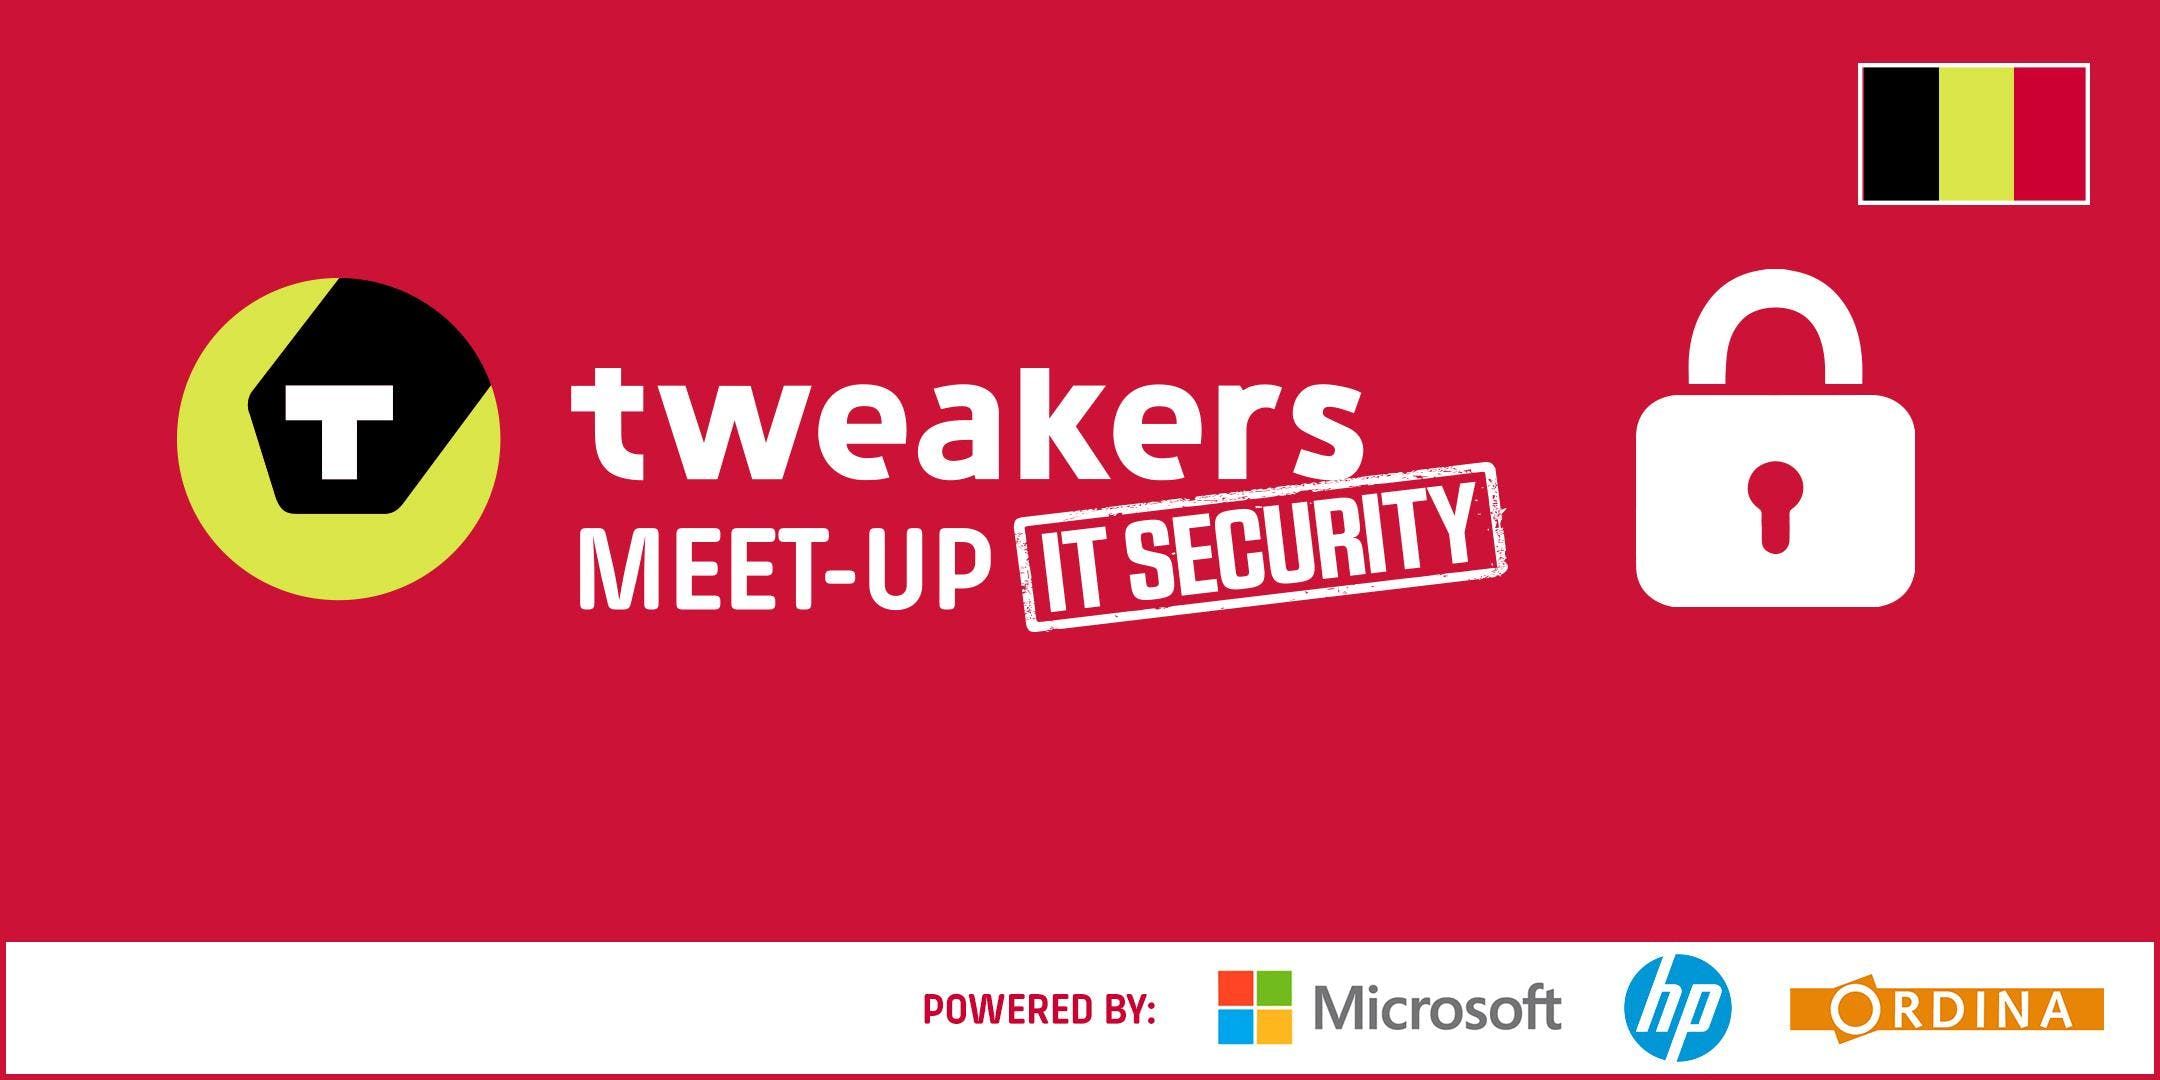 Tweakers Meet-up BE: IT Security